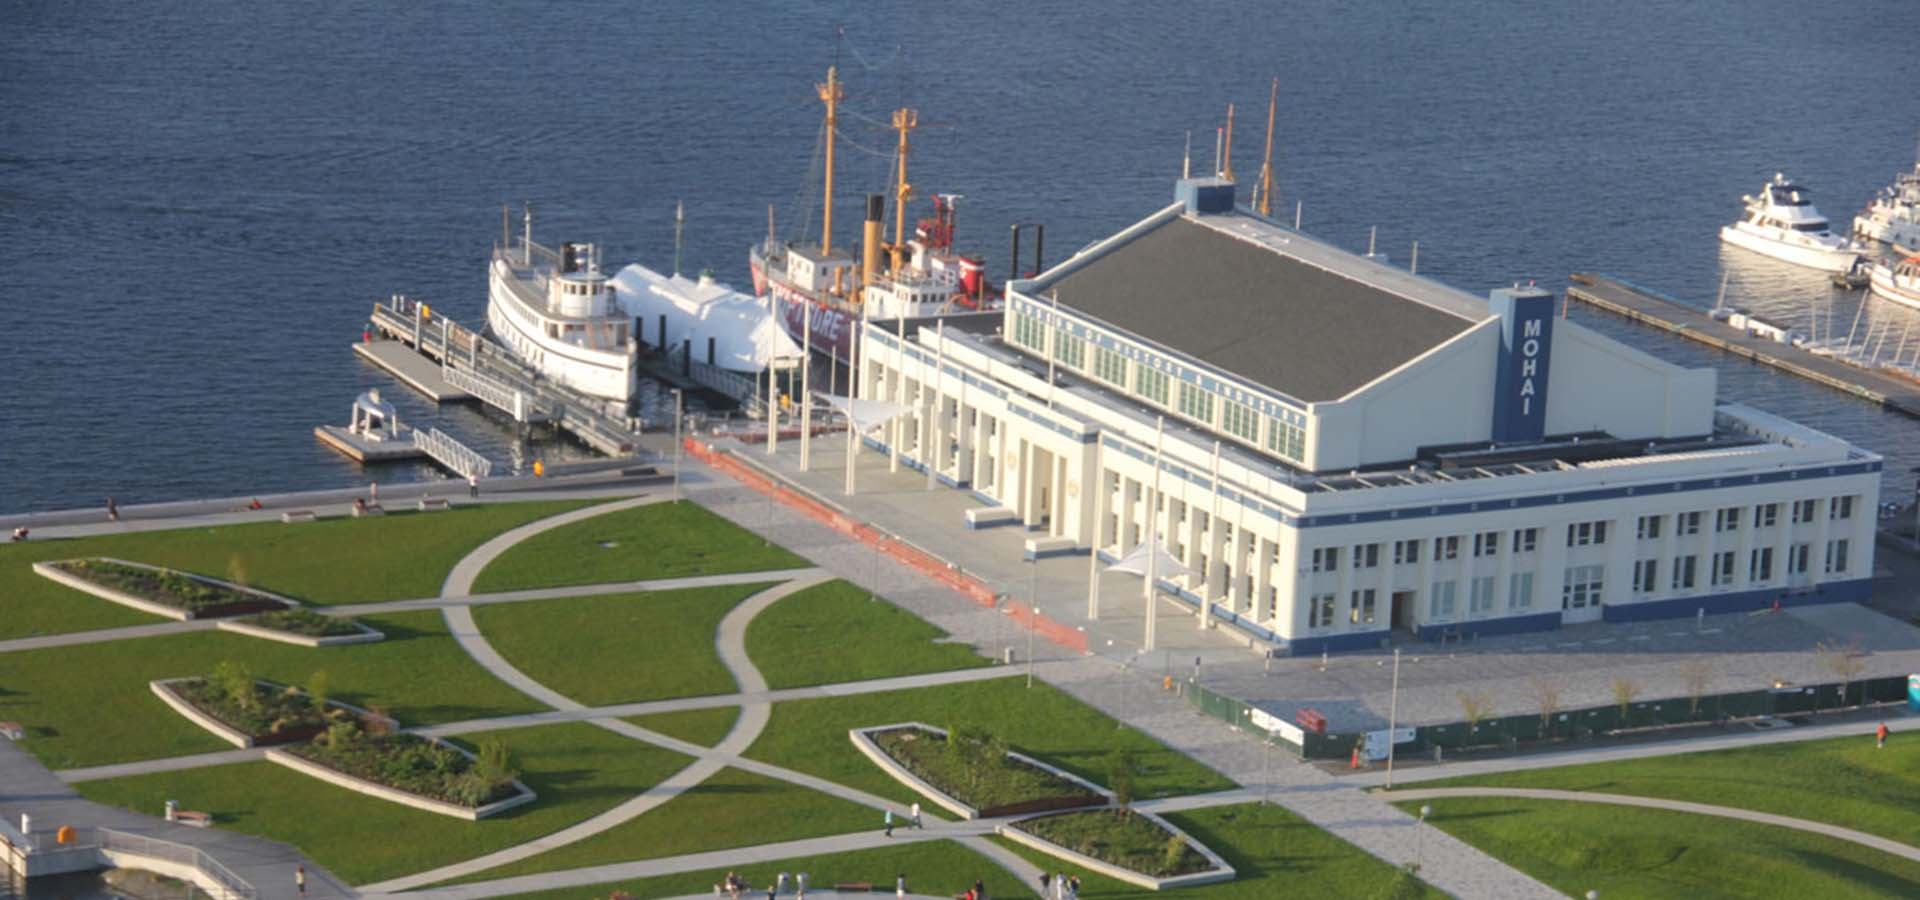 Bird's eye view of MOHAI and the park grounds at South Lake Union.